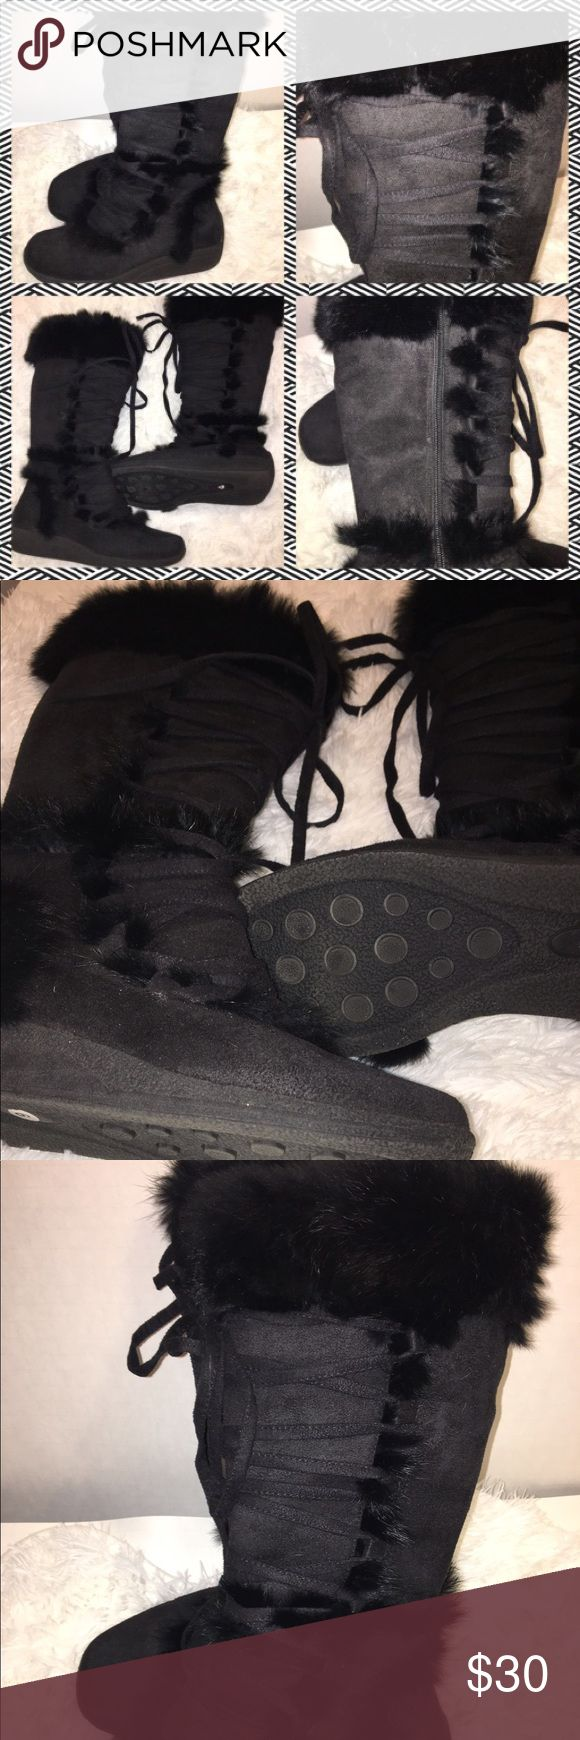 Noel Black velvet & faux fur tie up boots size 6 Gorgeous and warm black lace up boots in size 6 by Noel. Has faux fur and velvet material around outside of boots. Laces go up the front. Please see the other items in my closet. Bundle and save! Come from a smoke-free home. Noel Shoes Lace Up Boots